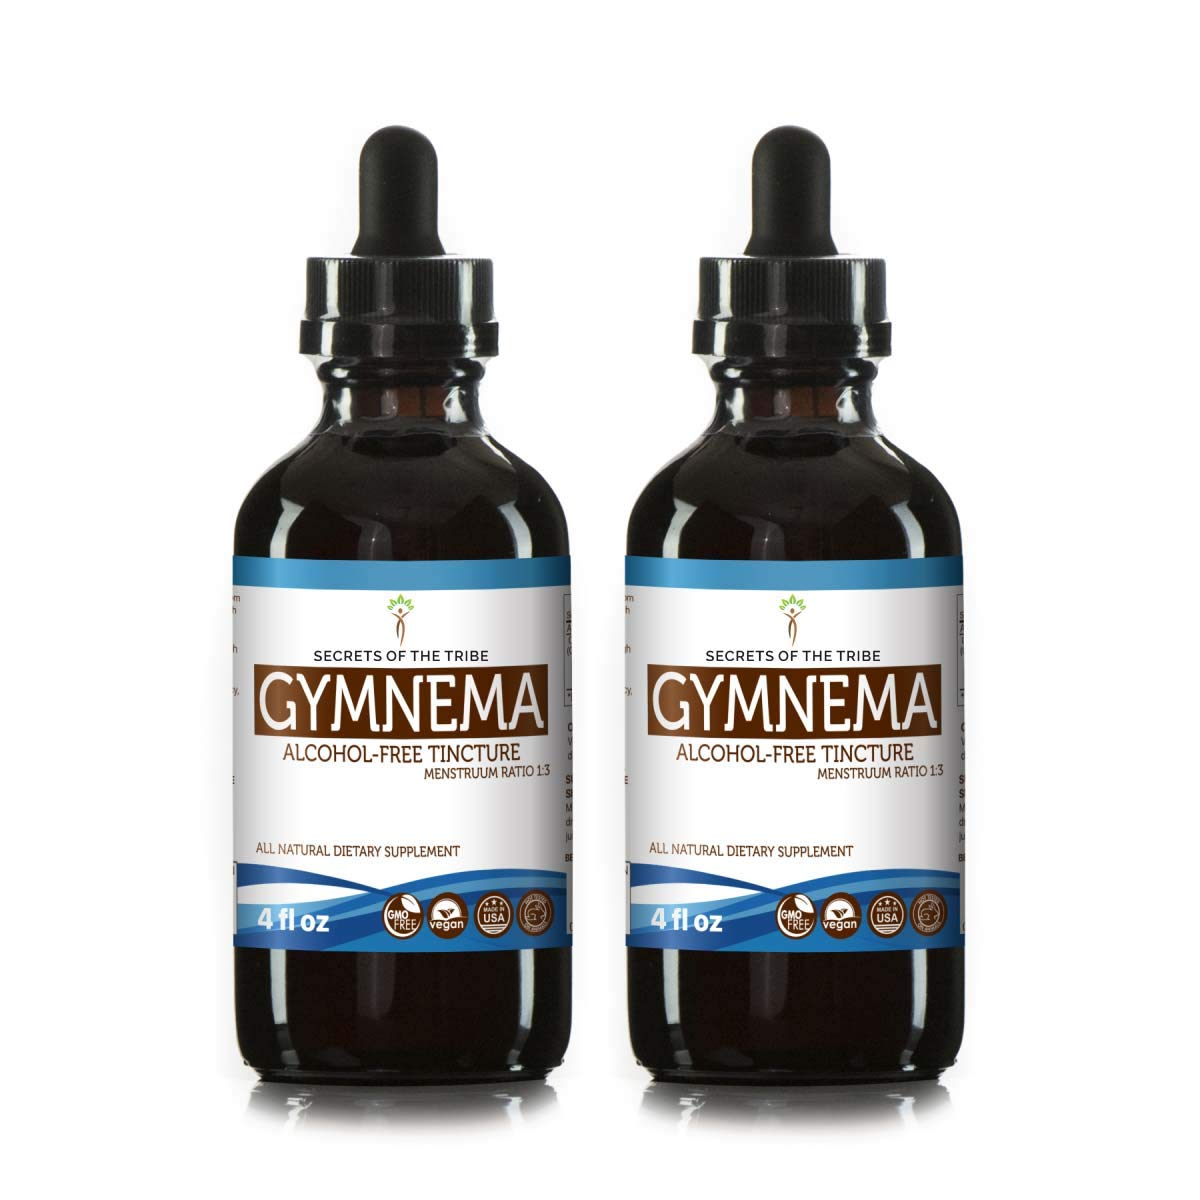 Gymnema Liquid Extract Alcohol-Free Tincture, Organic Gymnema (Gymnema Sylvestre) Dried Leaf (2x4 fl oz) by Secrets of the Tribe (Image #2)